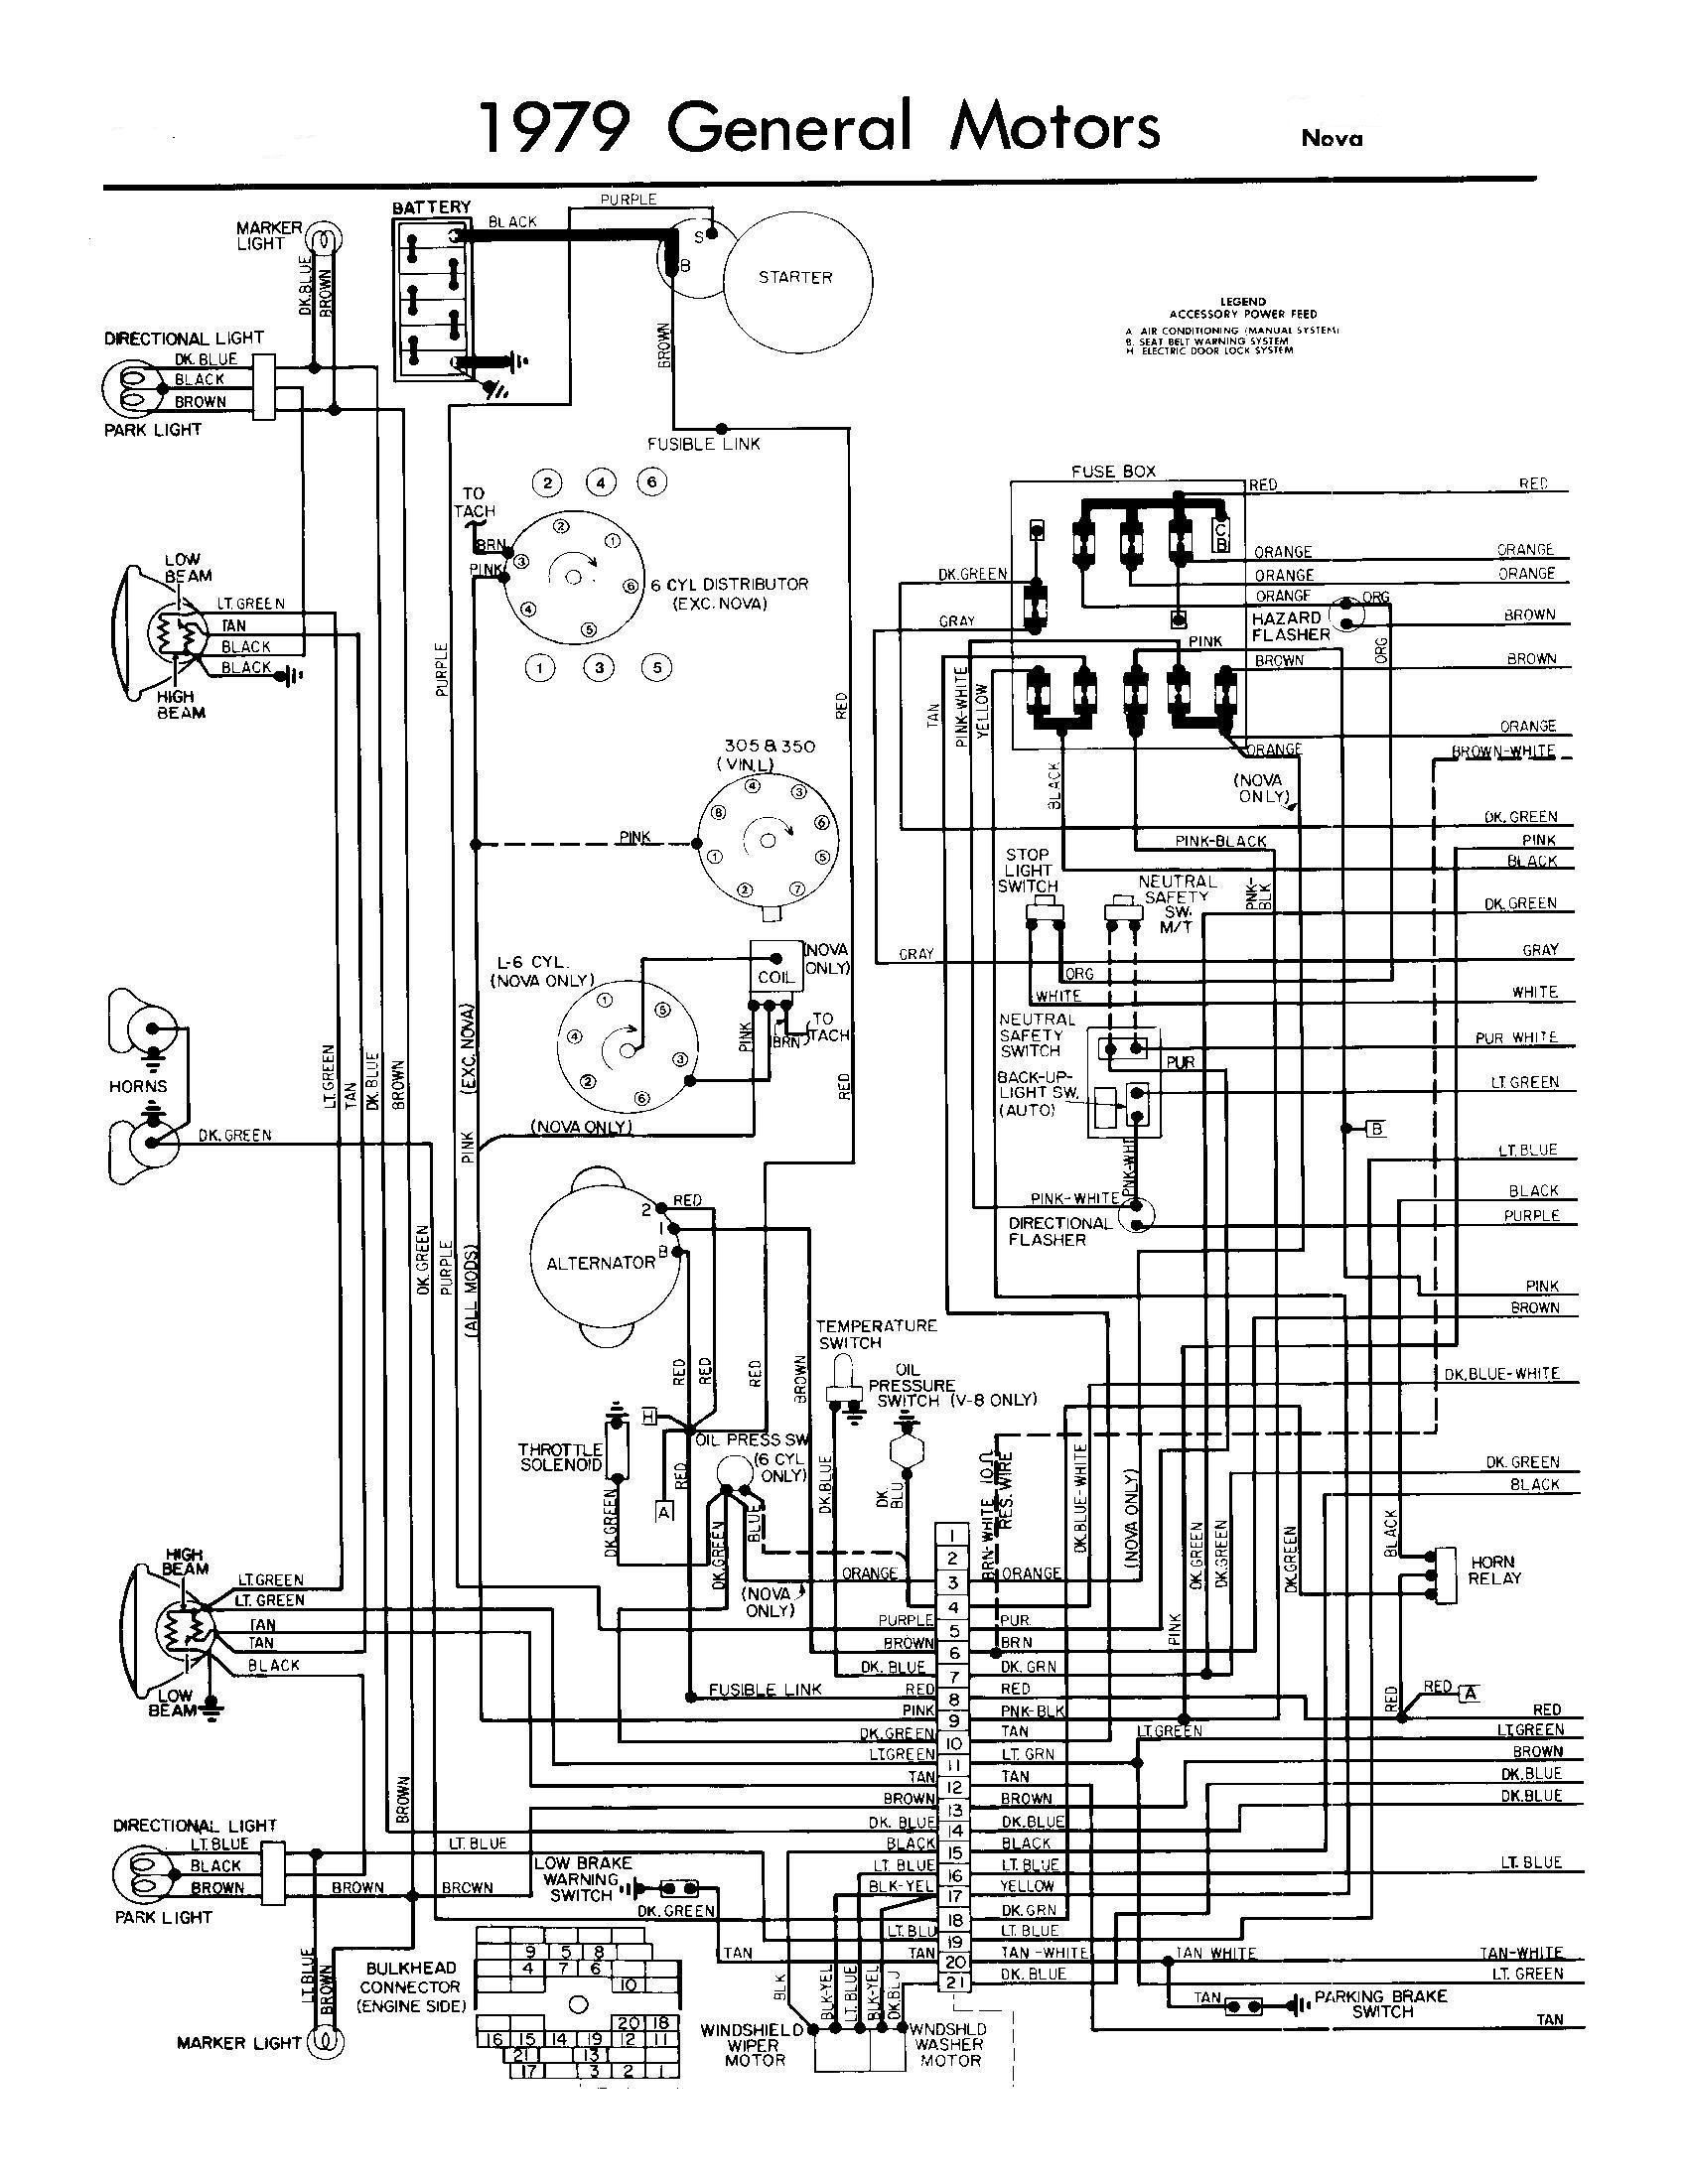 af30d80785d45bfeba8f1db47439920a 1975 caprice wiring diagram wiring diagram manual